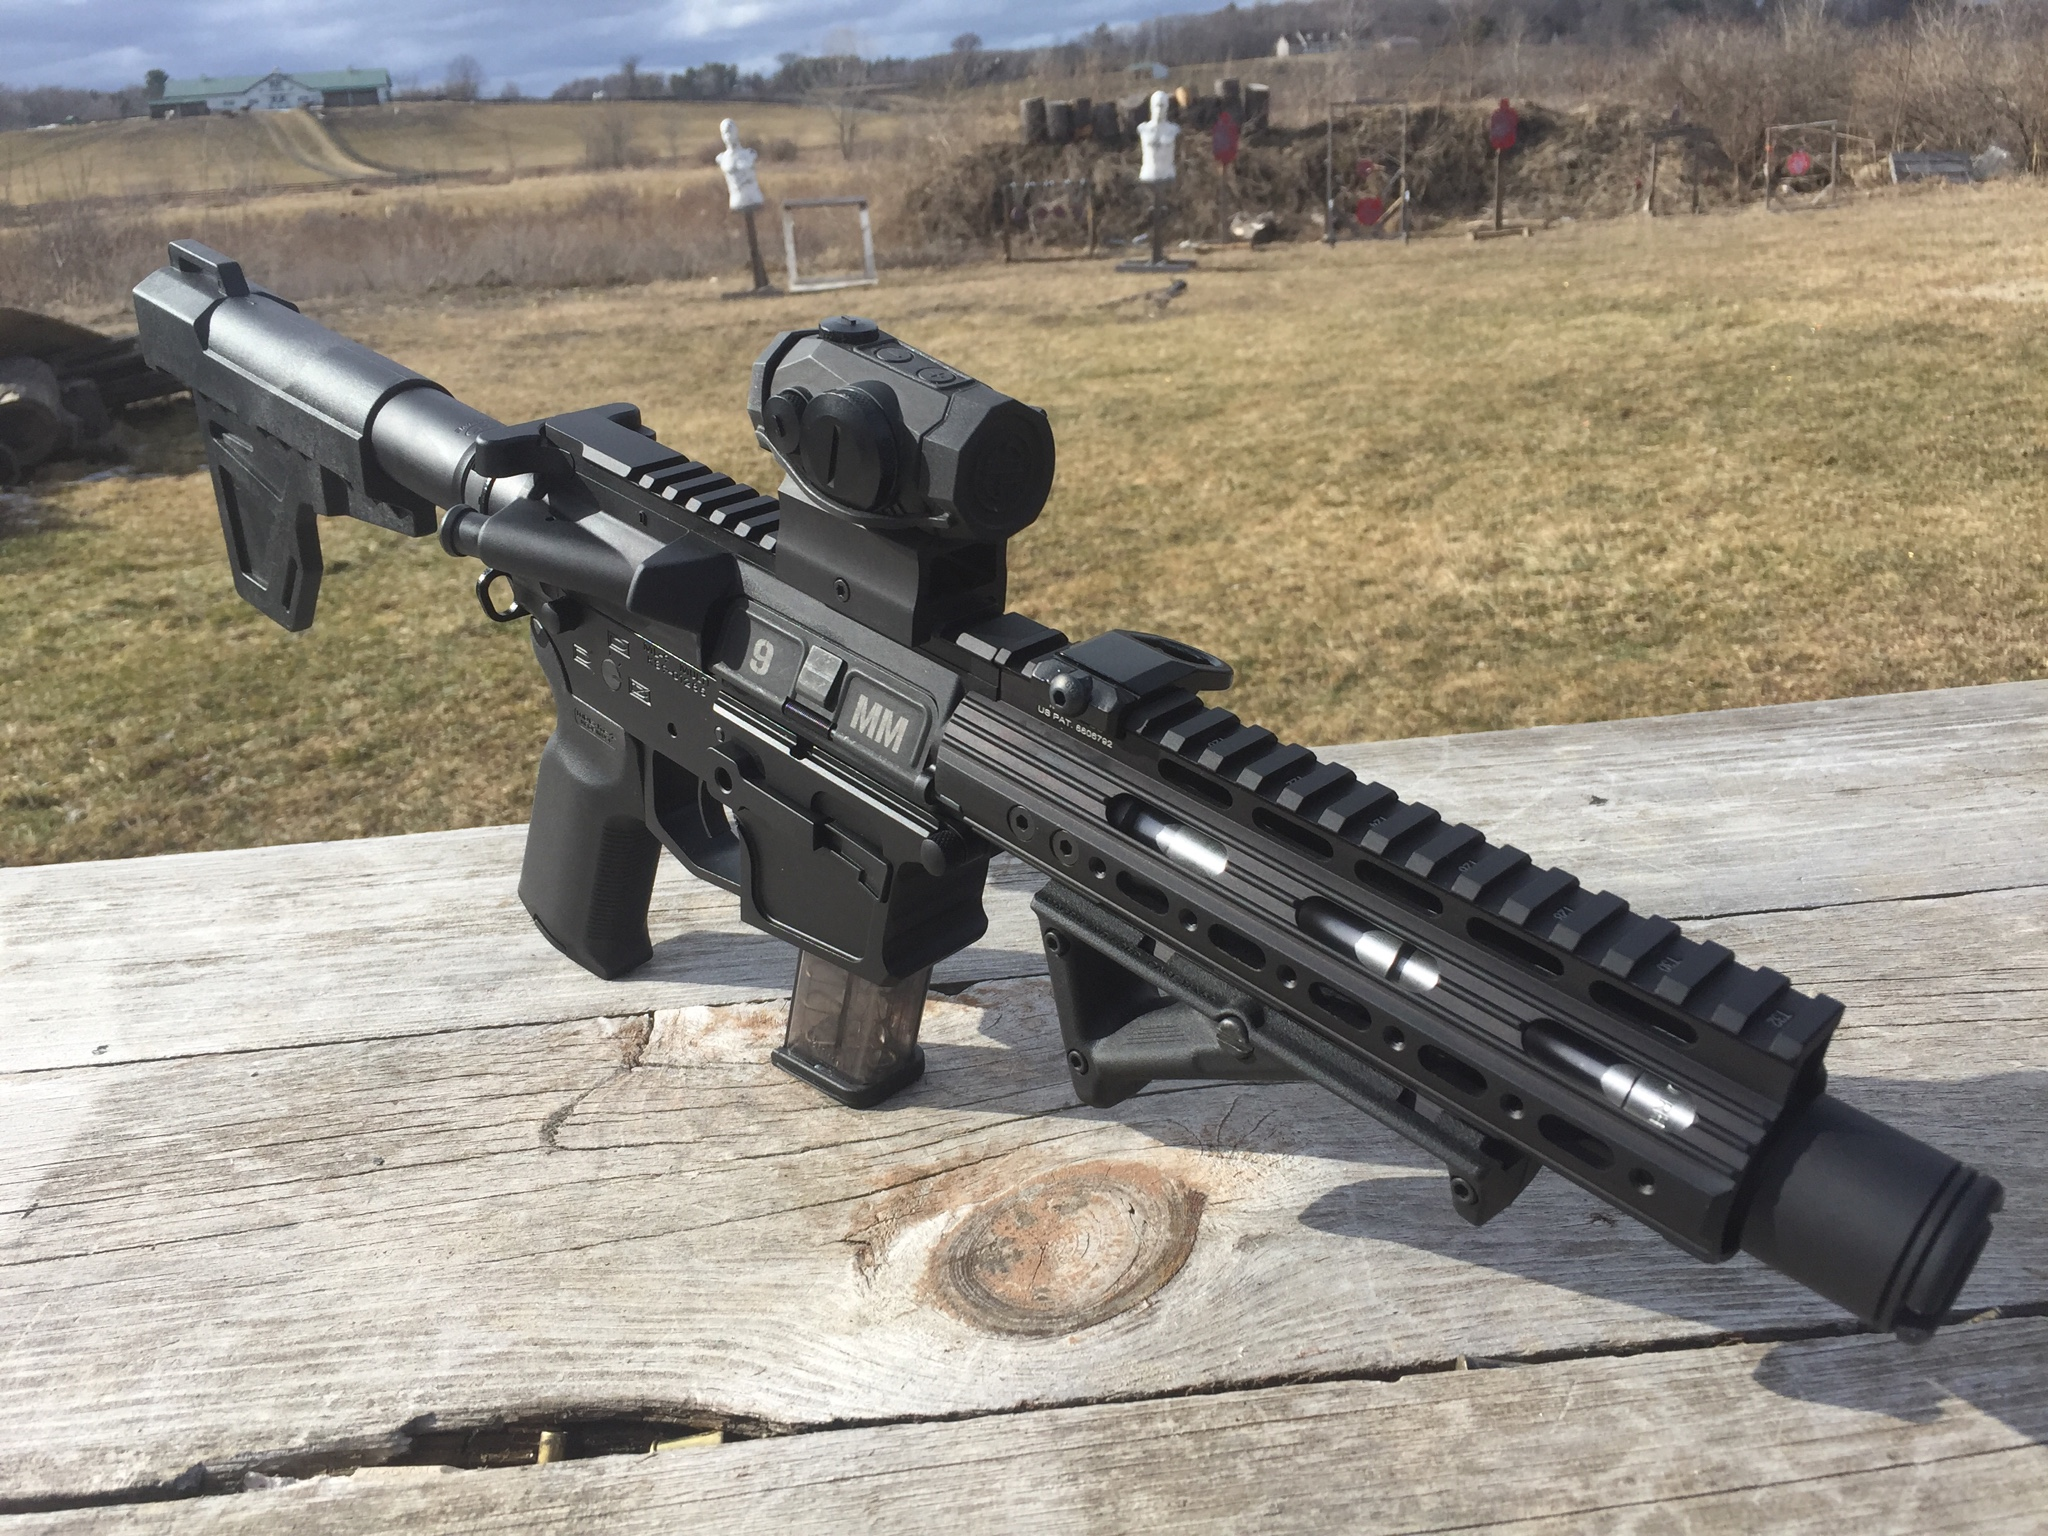 AR-15 Pistol Build - Lets Talk About It | Page 4 | NY Gun Forum